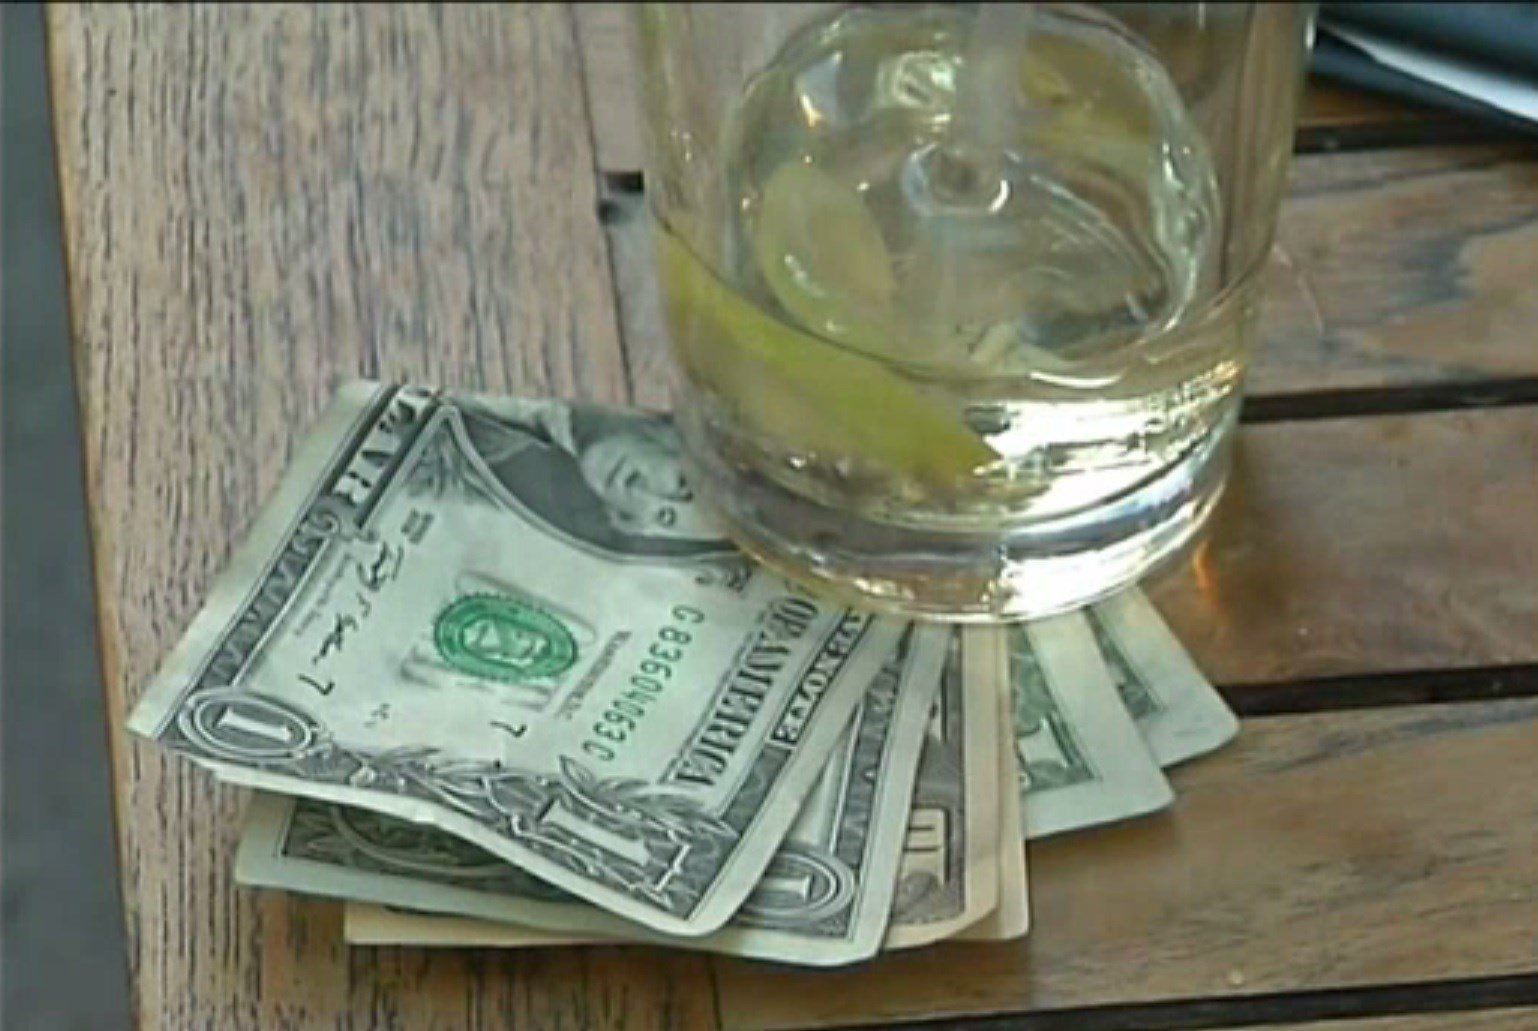 Think You're a Good Tipper? Income May Be a Factor, Study Reveals